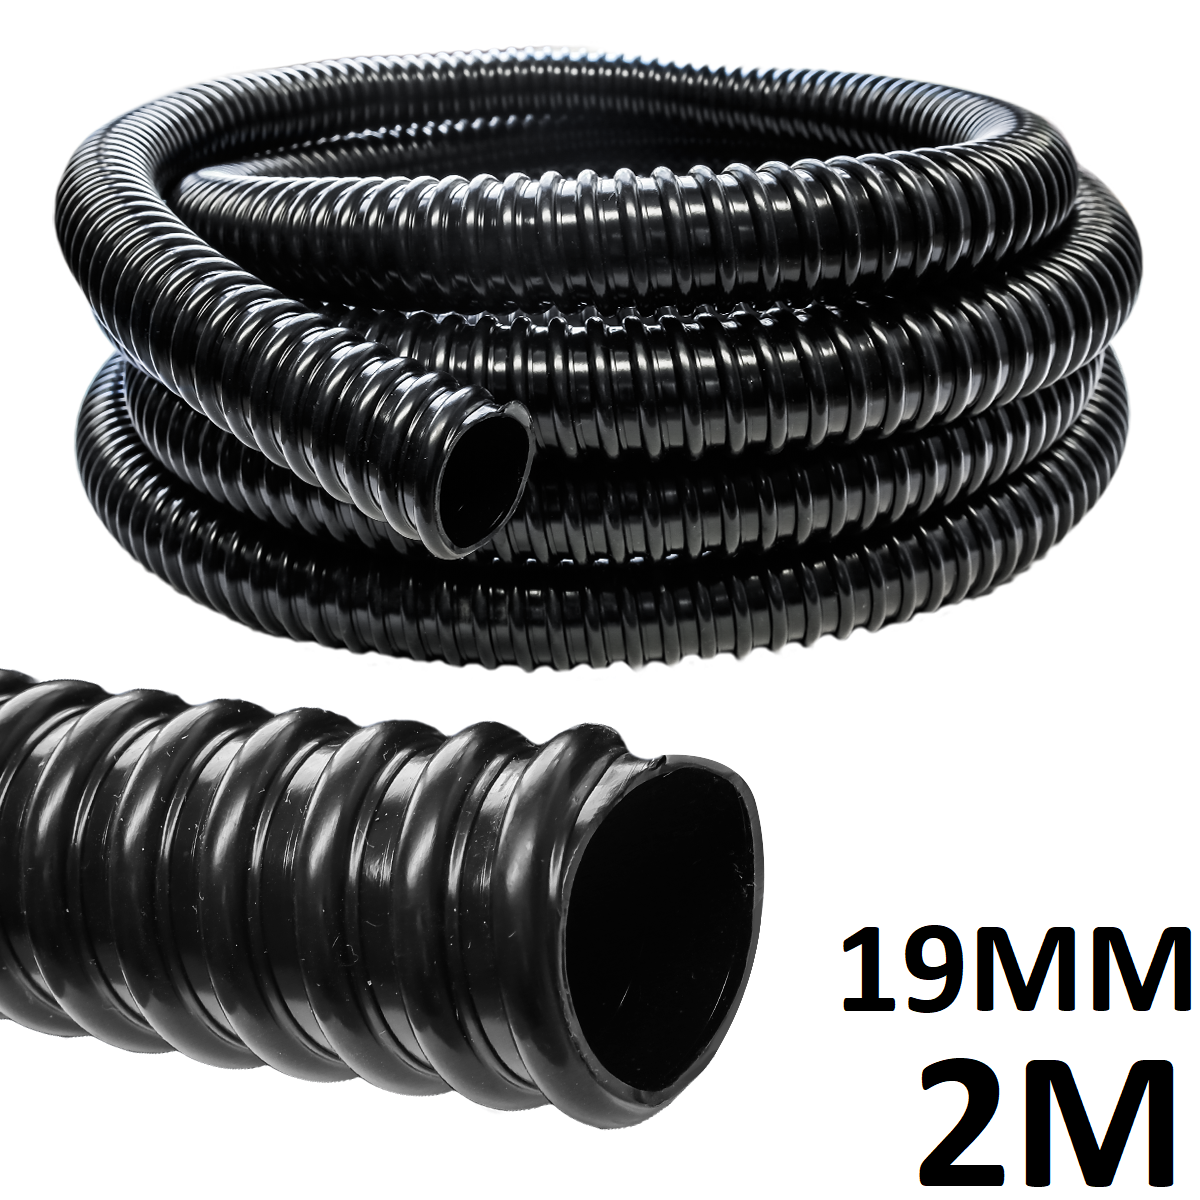 2M meters x Water Butt Rain Diverter Saver Extension Pipe Hose 19mm greenhouse